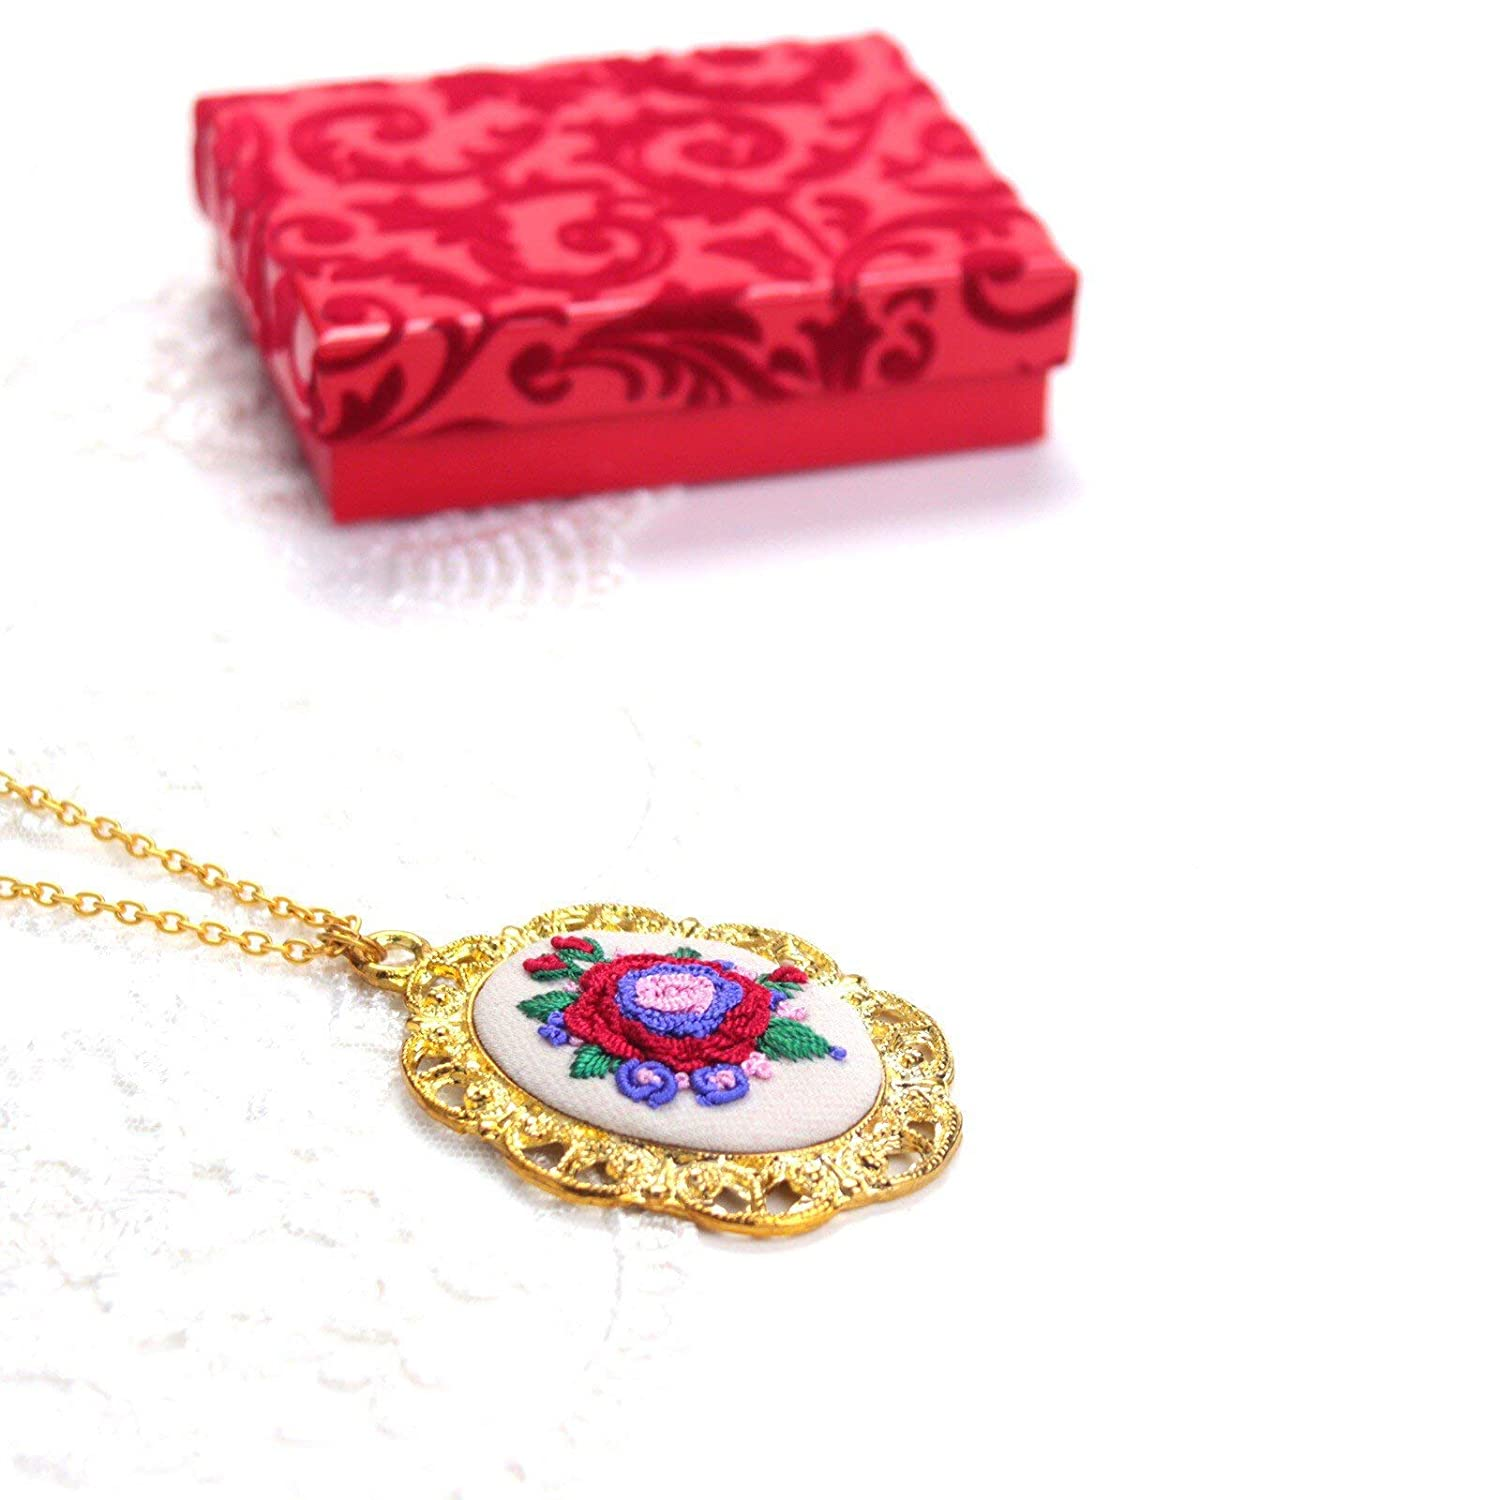 Golden Color Pendant with Hand Embroidered Flower Motifs Necklace for Women